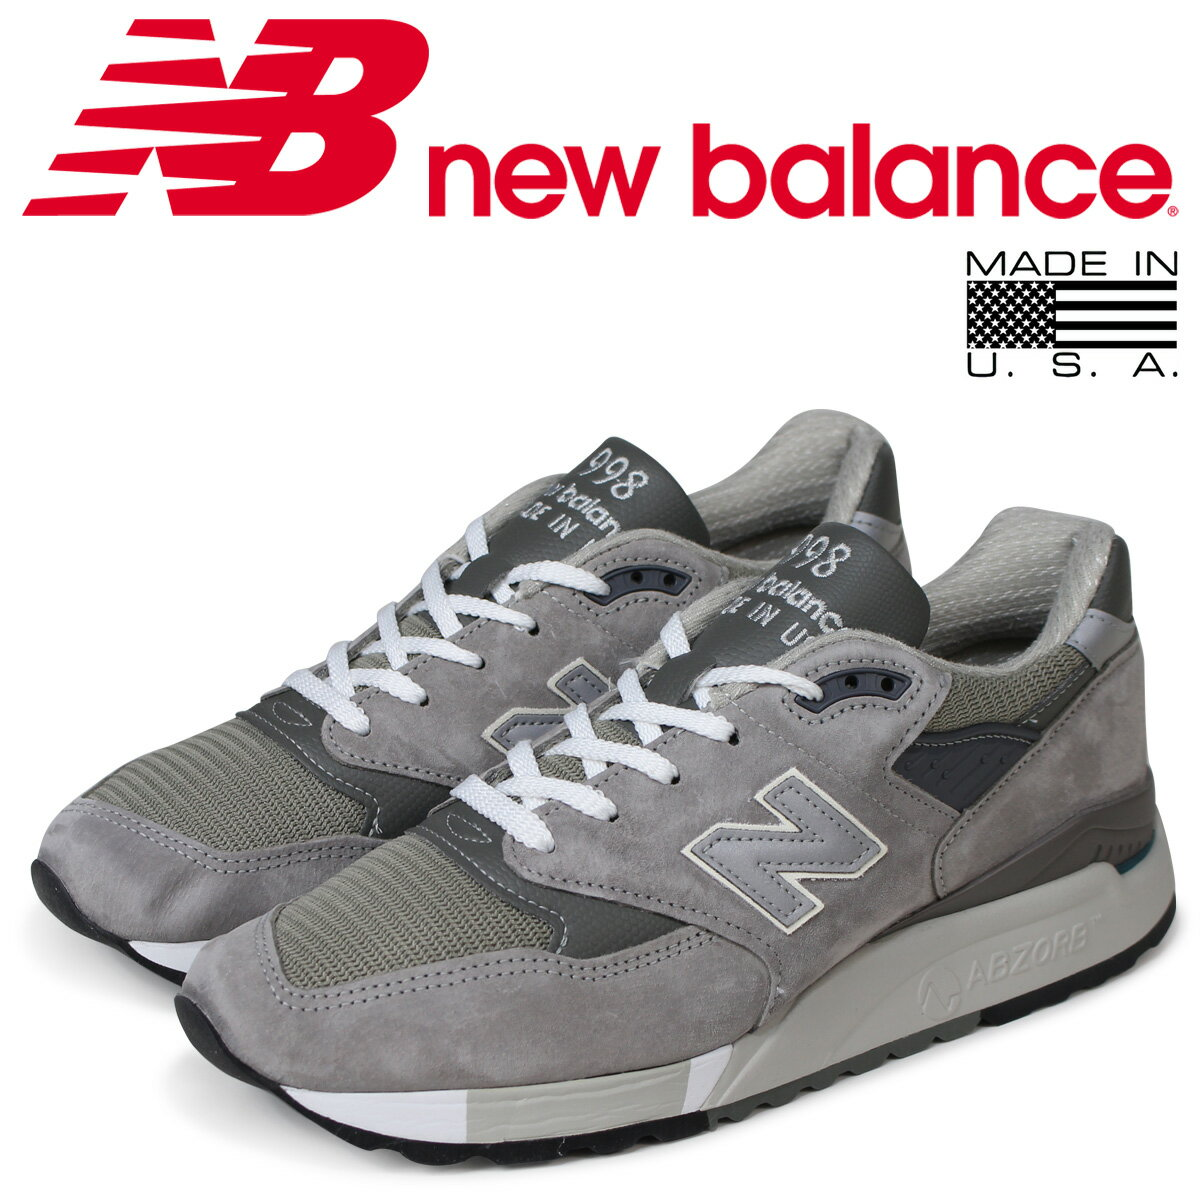 new balance ニューバランス スニーカー M998 GY MADE IN USA Dワイズ メンズ 靴 グレー [予約商品 7/19頃入荷予定 追加入荷]